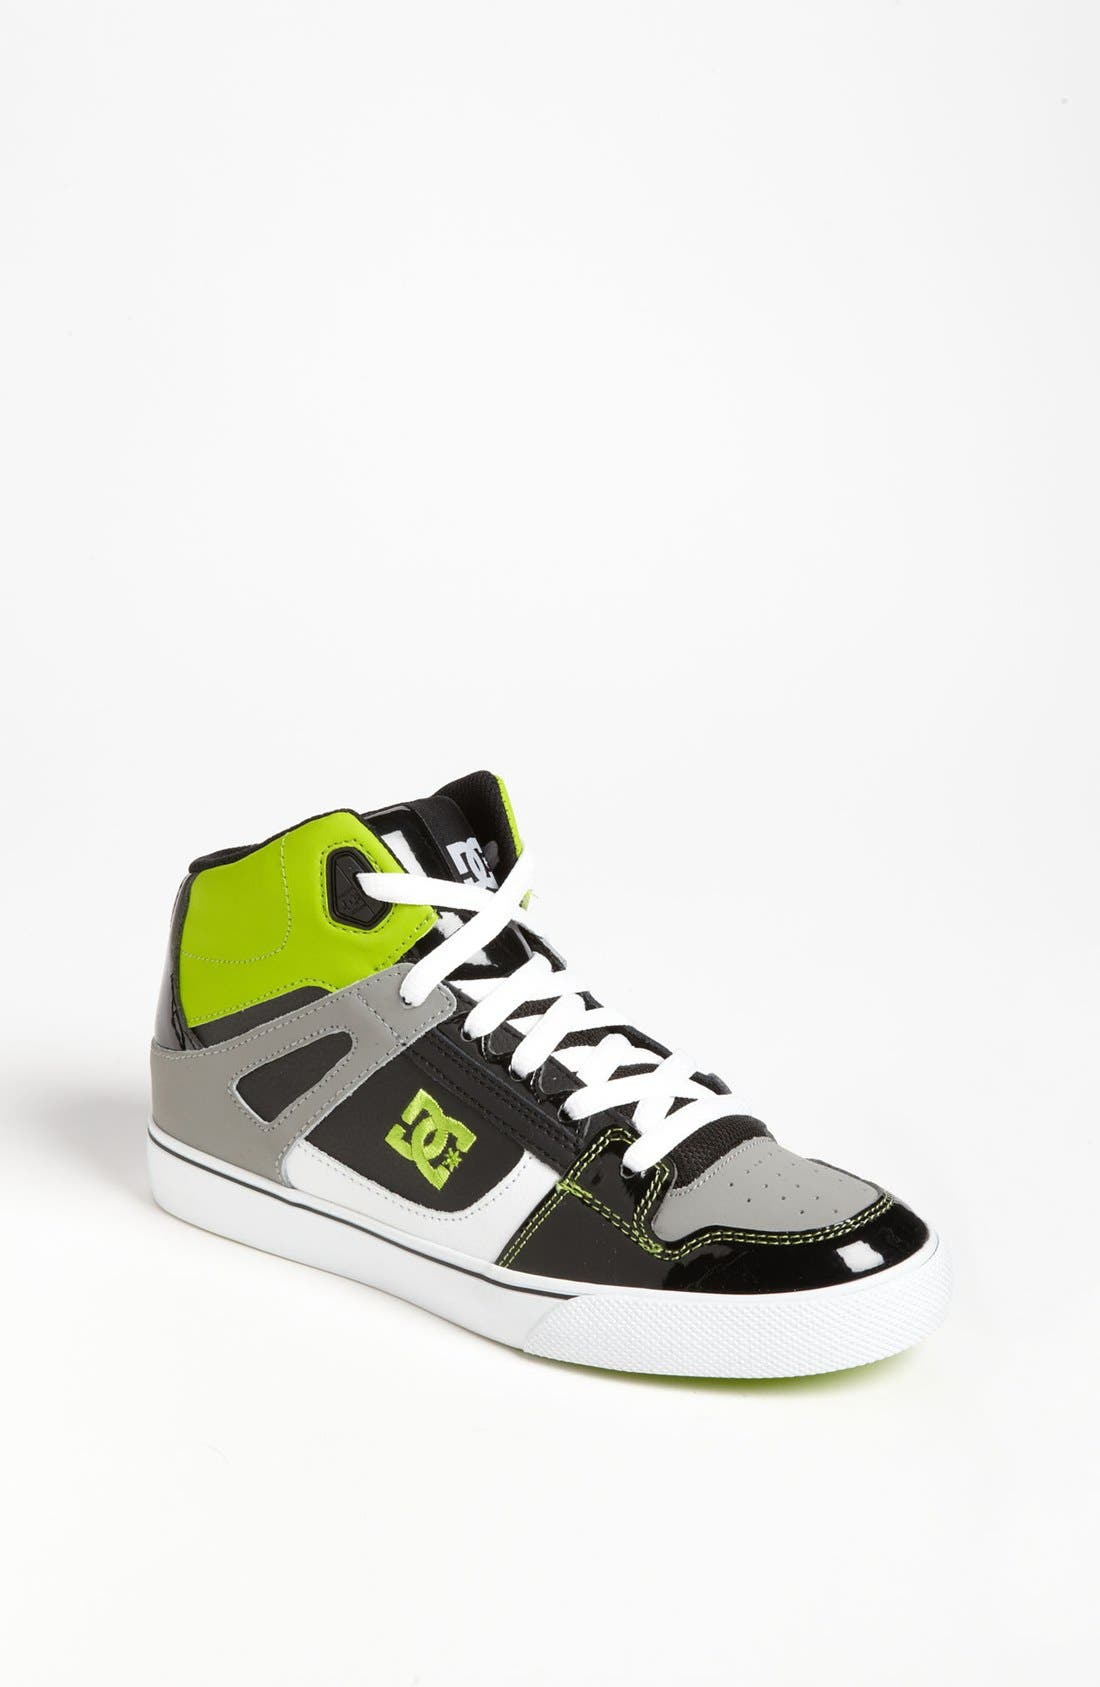 Alternate Image 1 Selected - DC Shoes 'Spartan - Hi' Skate Shoe (Little Kid & Big Kid)